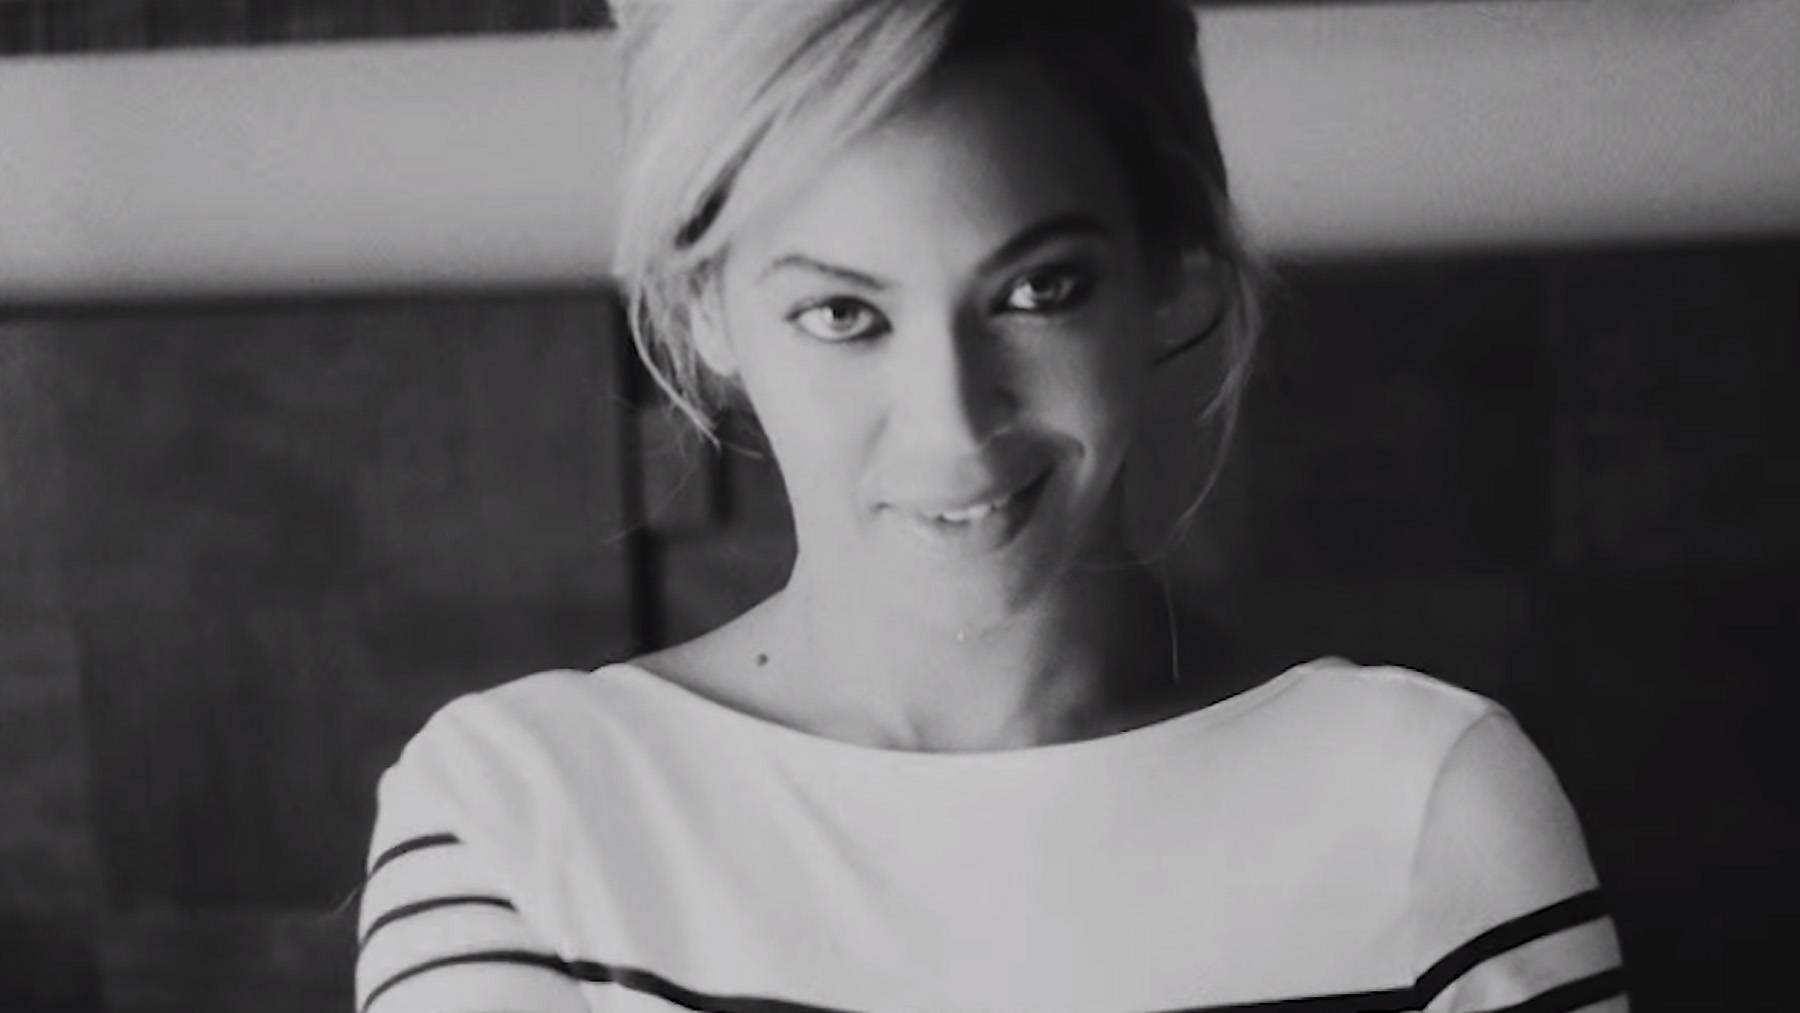 """Jay Z and Beyonc?'s New Project? - Jay Z and Beyonc? have released a 15-second trailer for """"Bang Bang,"""" a project that we're not quite sure what it's about just yet. The video, shot in black and white, seems to be another portion of the On the Run trailer that has been airing on HBO to promote their upcoming On the Run Tour special. Watch """"Bang Bang"""" here.   (Photo: Nowness via YouTube.com)"""